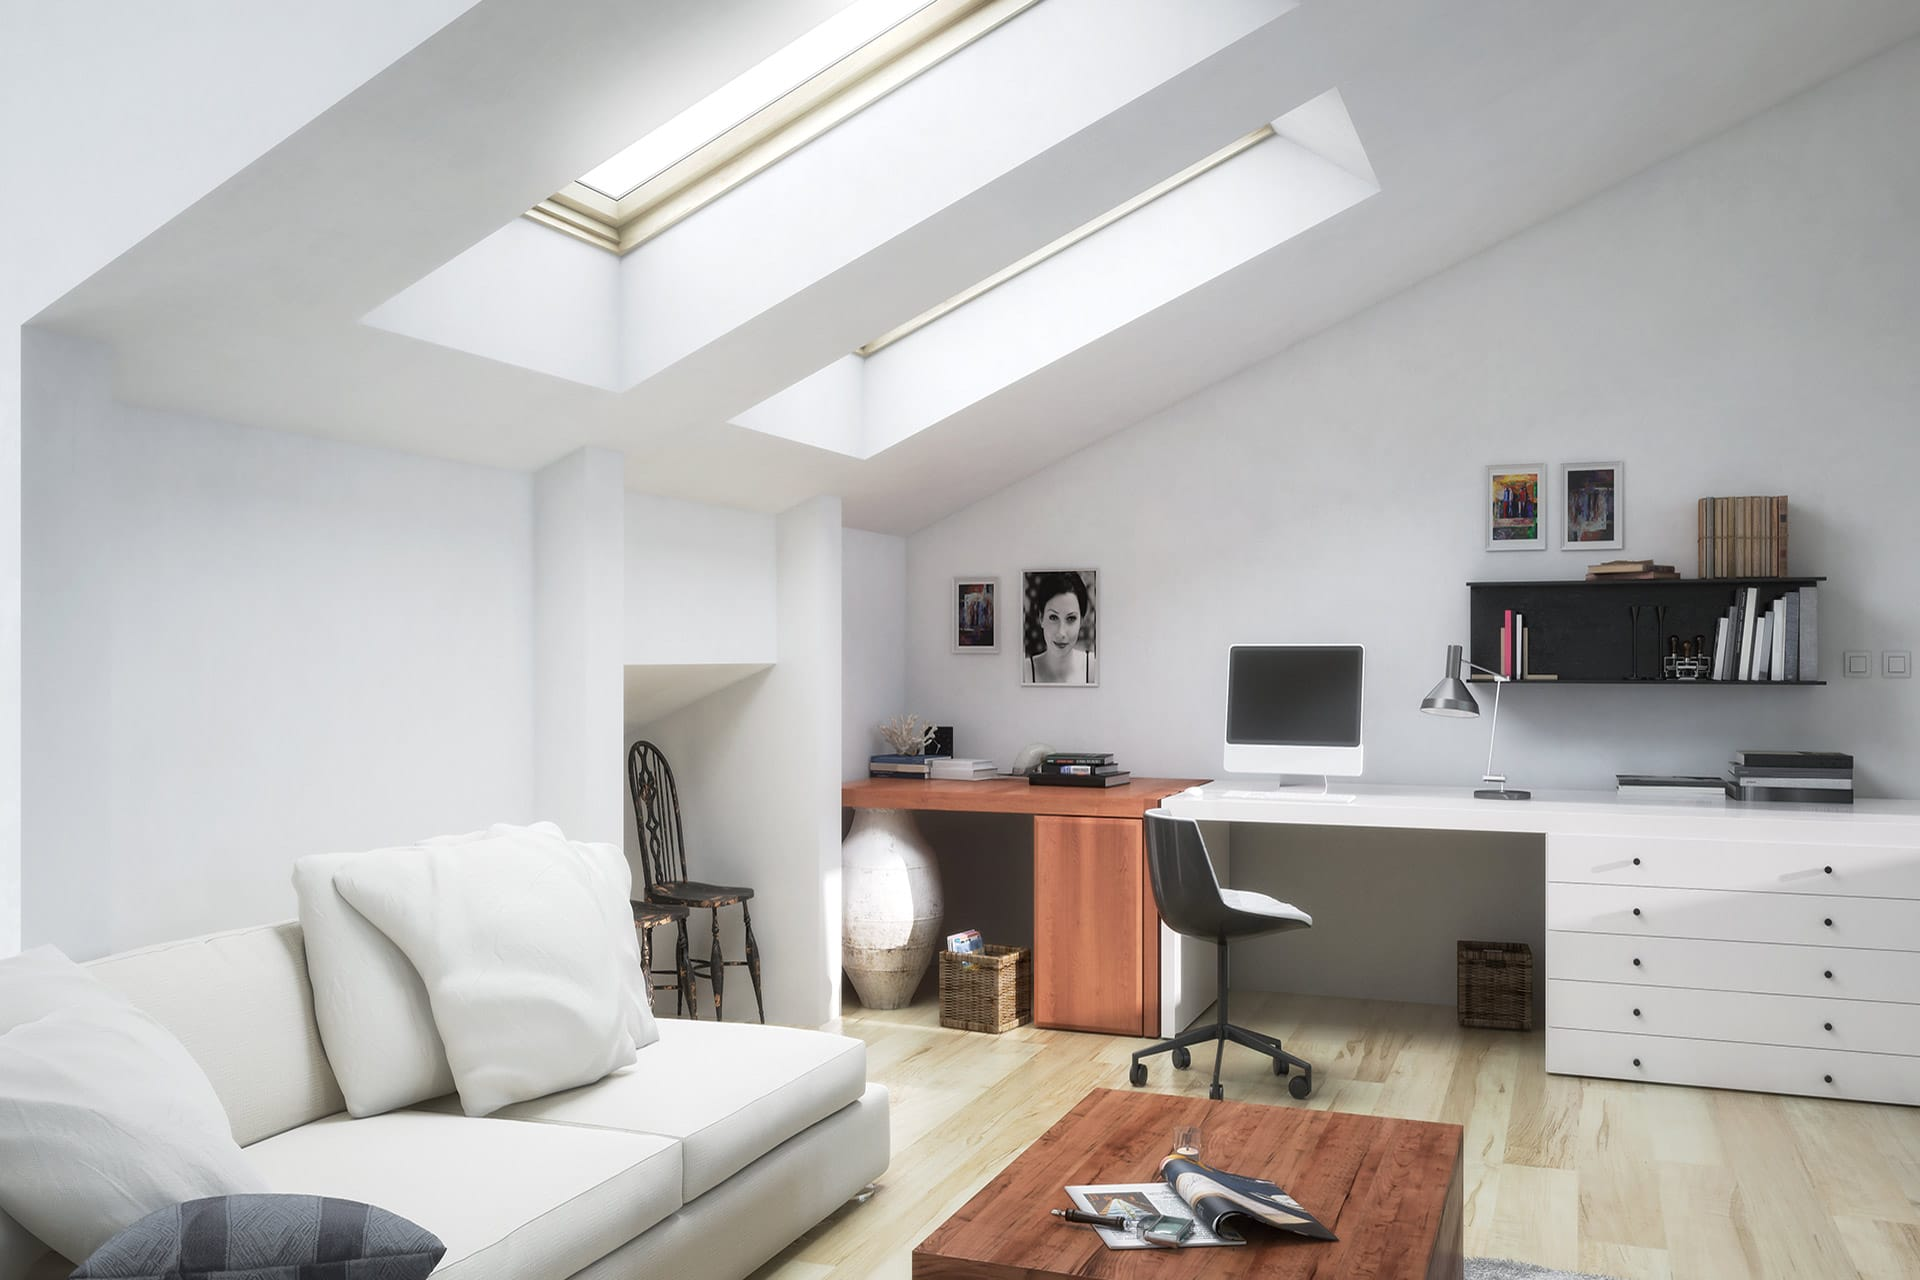 TRADITIONAL AND DORMER LOFT CONVERSIONS IN COBHAM AND BEYOND